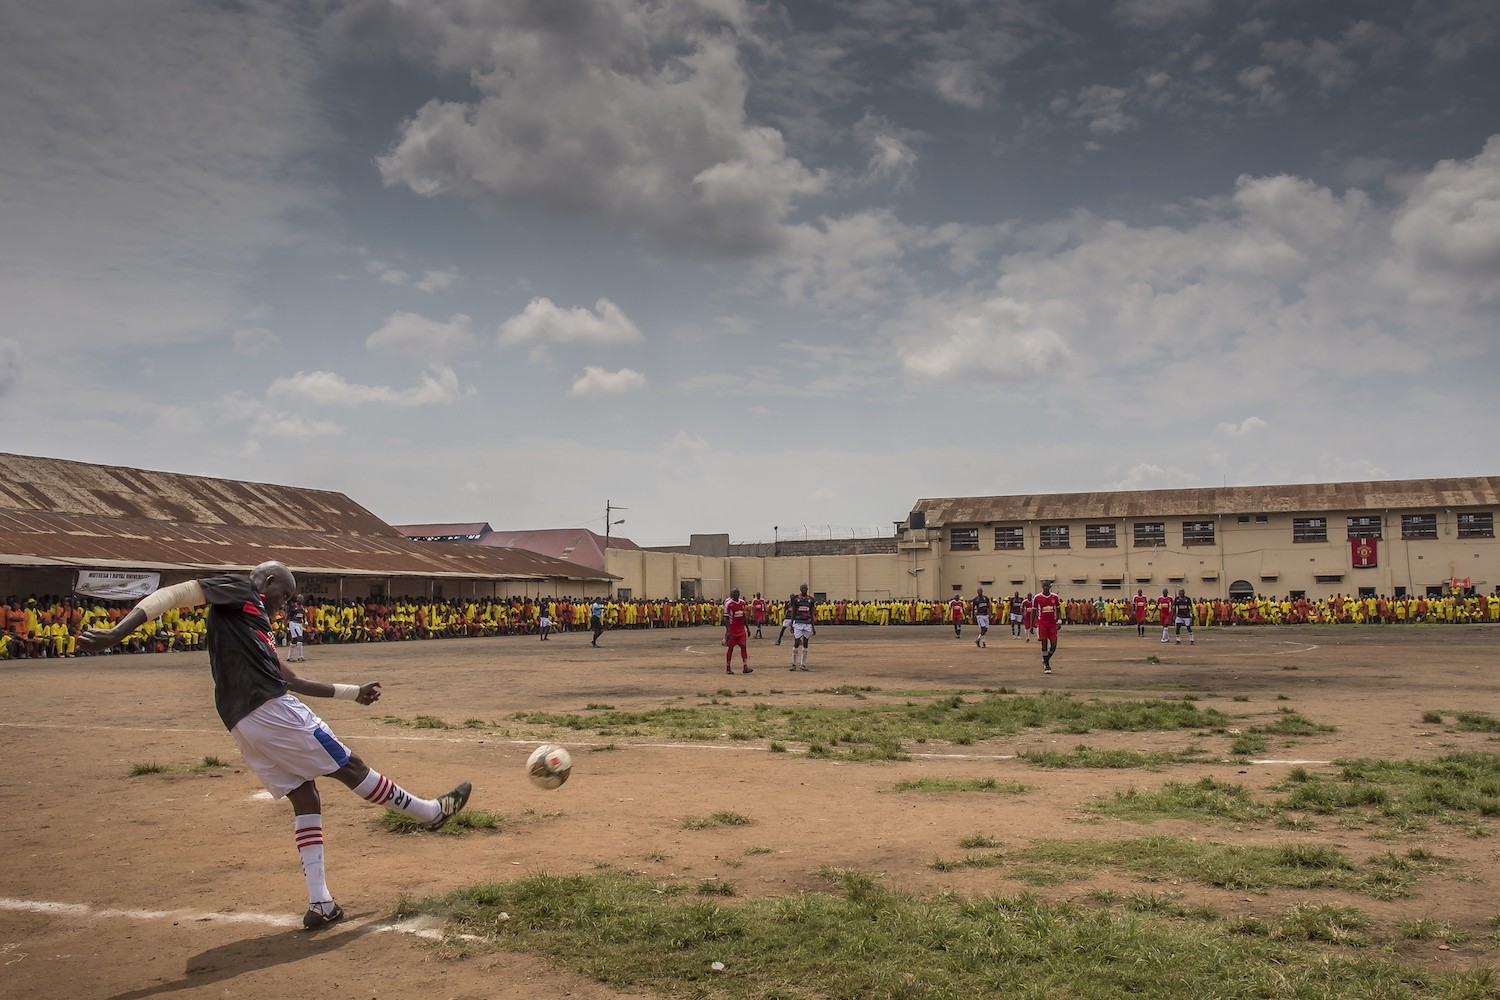 In Luzira Prison, in Kampala, a football league is organized. The teams composed of inmates meet each other throughout the year until a final. The teams are named mainly out of English Premier League clubs: Manchester United, Liverpool, Everton, ... The pitch is the courtyard of the Upper Prison, the most secure place of the Prison large compound. Hundreds of inmates come to support their favorite team. Liverpool in black versus Manchester United in Red. Liverpool will win the match.